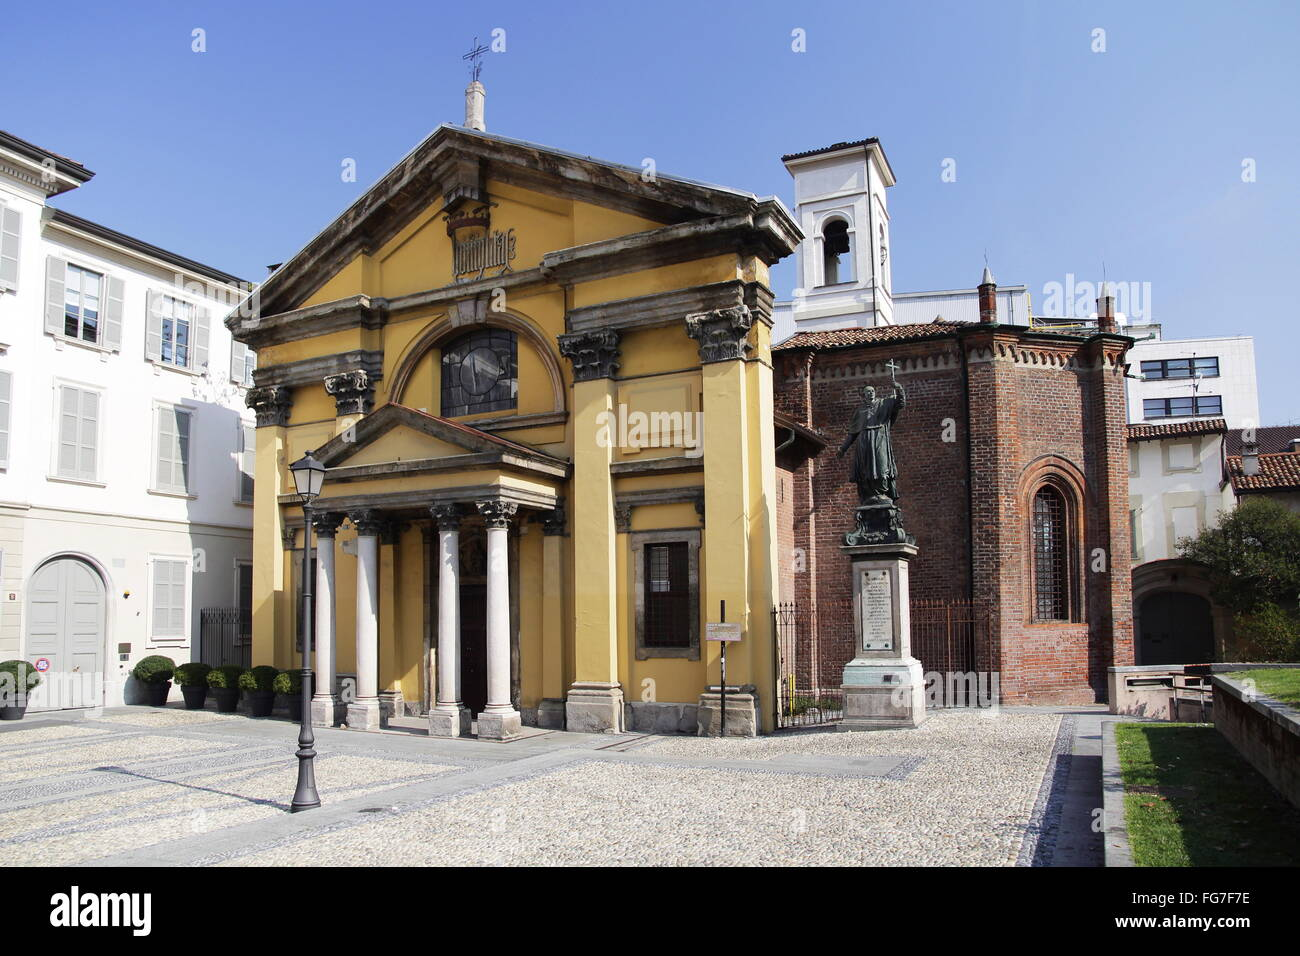 geography / travel, Italy, Lombardy, Milan, church Santa Maria del Podone, Piazza Boromeo, Additional-Rights-Clearance - Stock Image